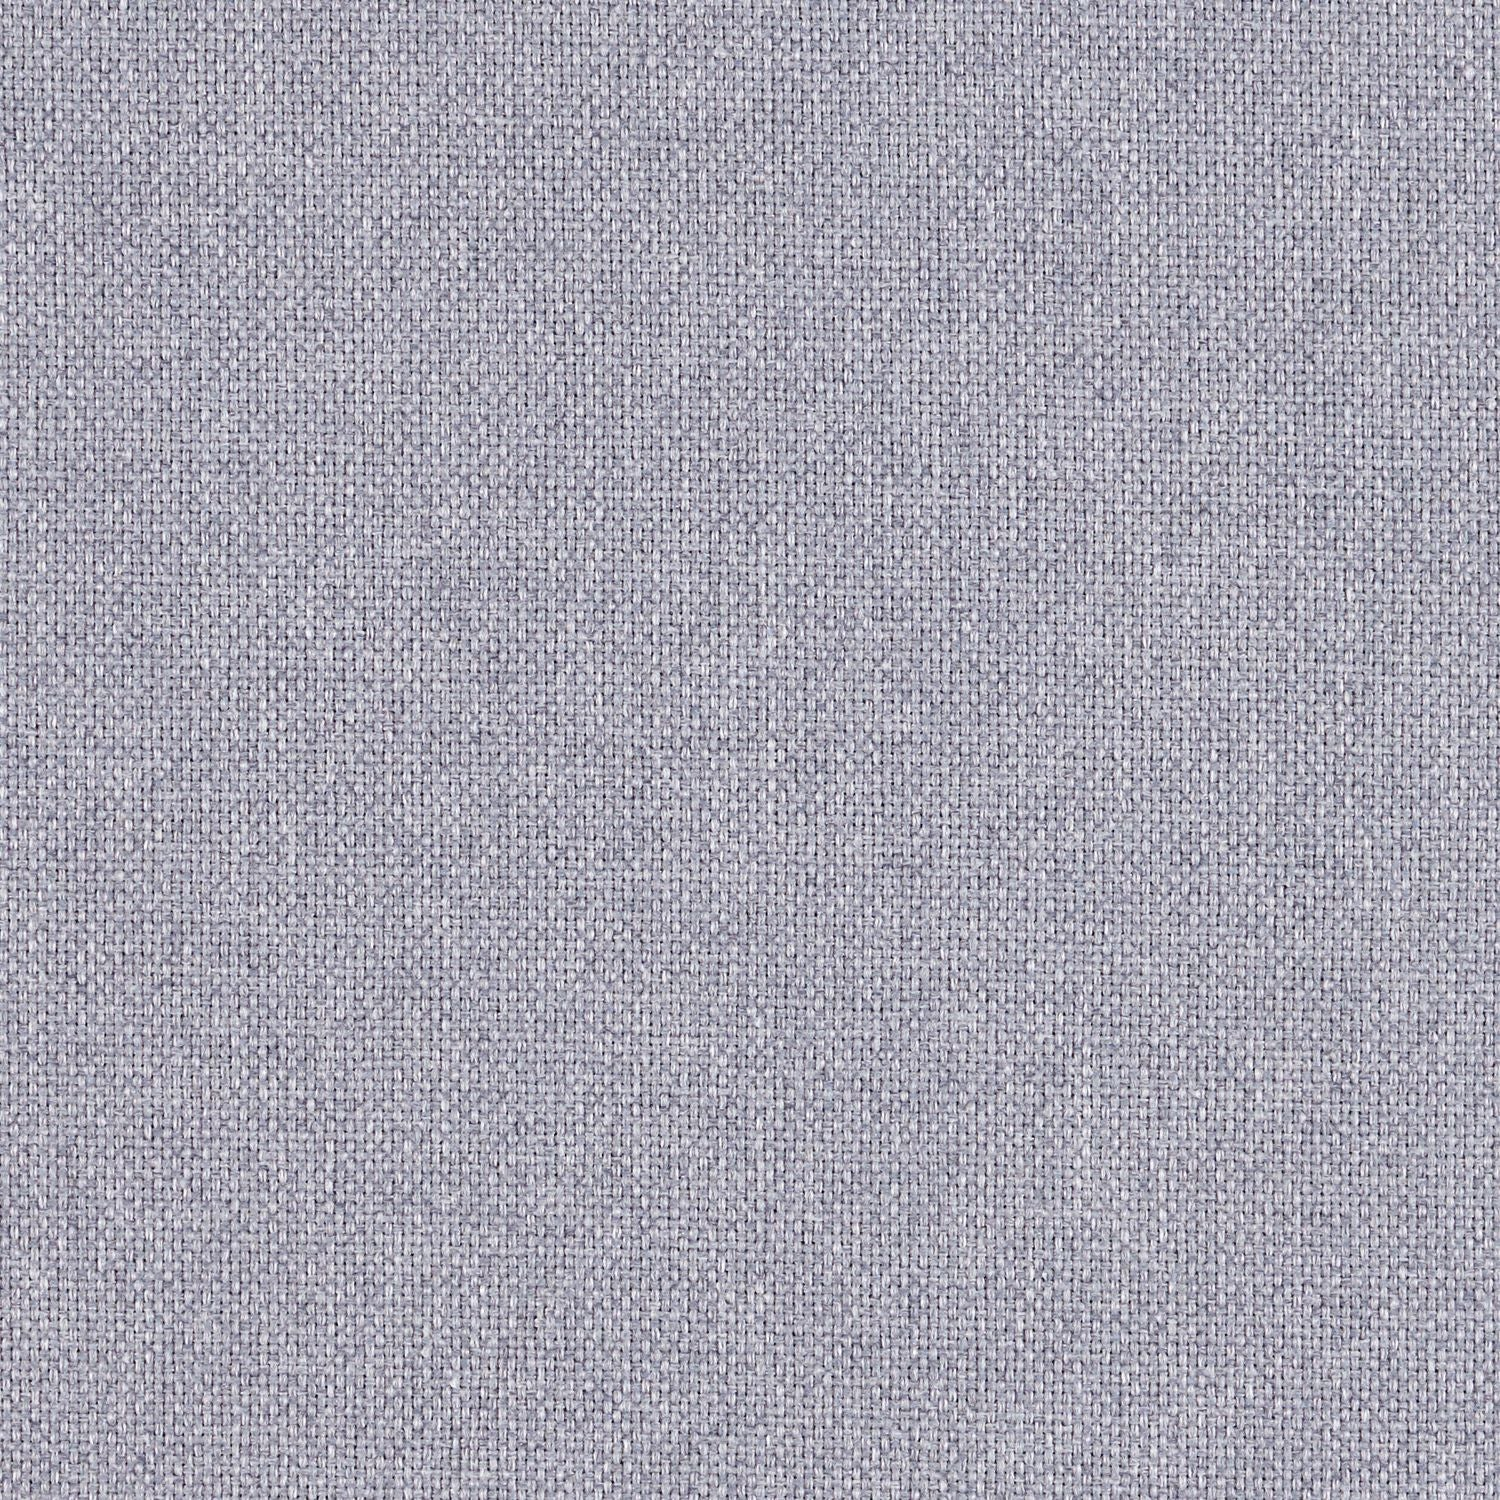 Backdrop - Shimmer - 1027 - 05